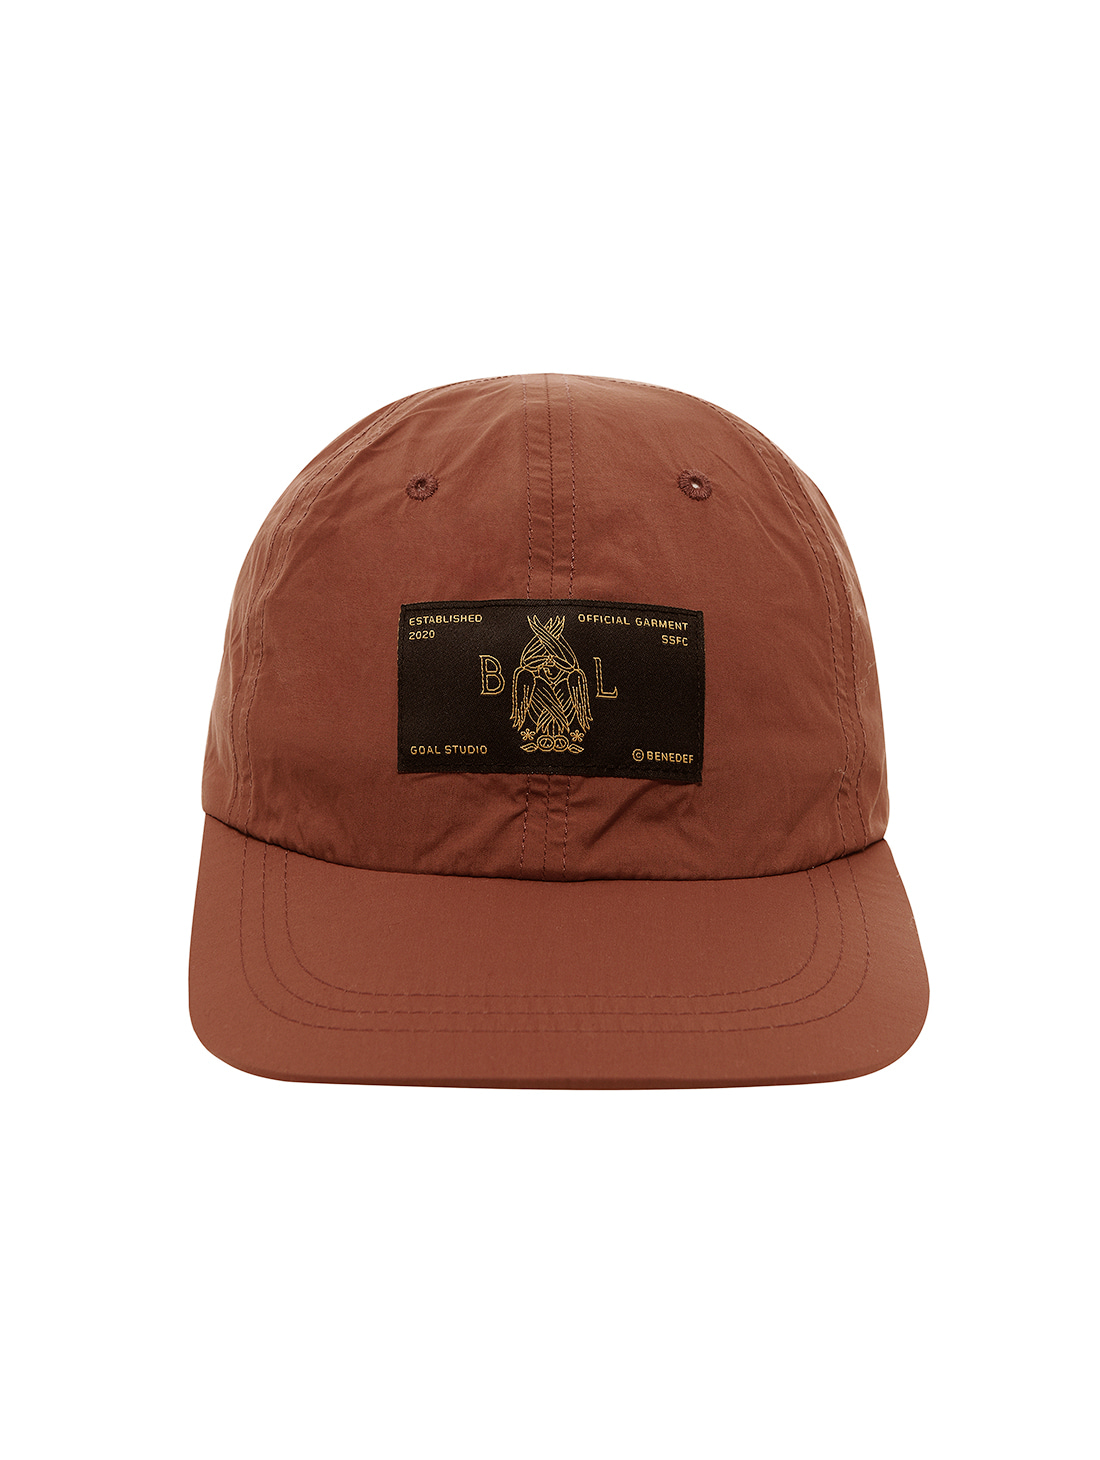 SSFC BALL CAP - BROWN